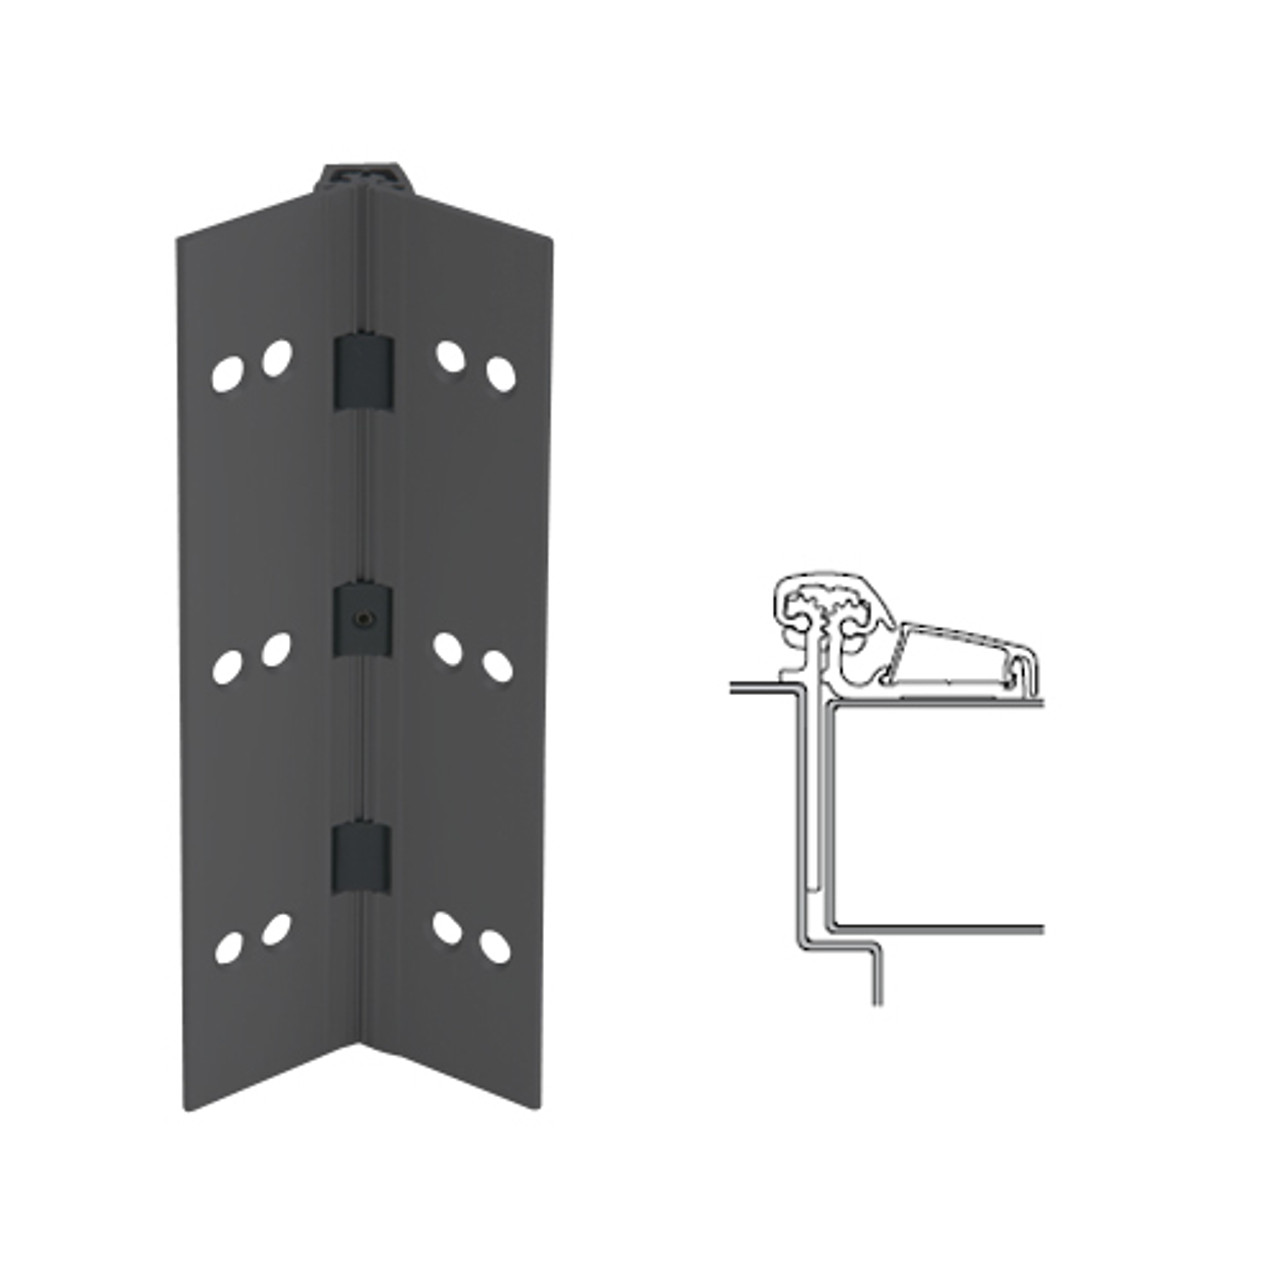 053XY-315AN-85-TF IVES Adjustable Half Surface Continuous Geared Hinges with Thread Forming Screws in Anodized Black